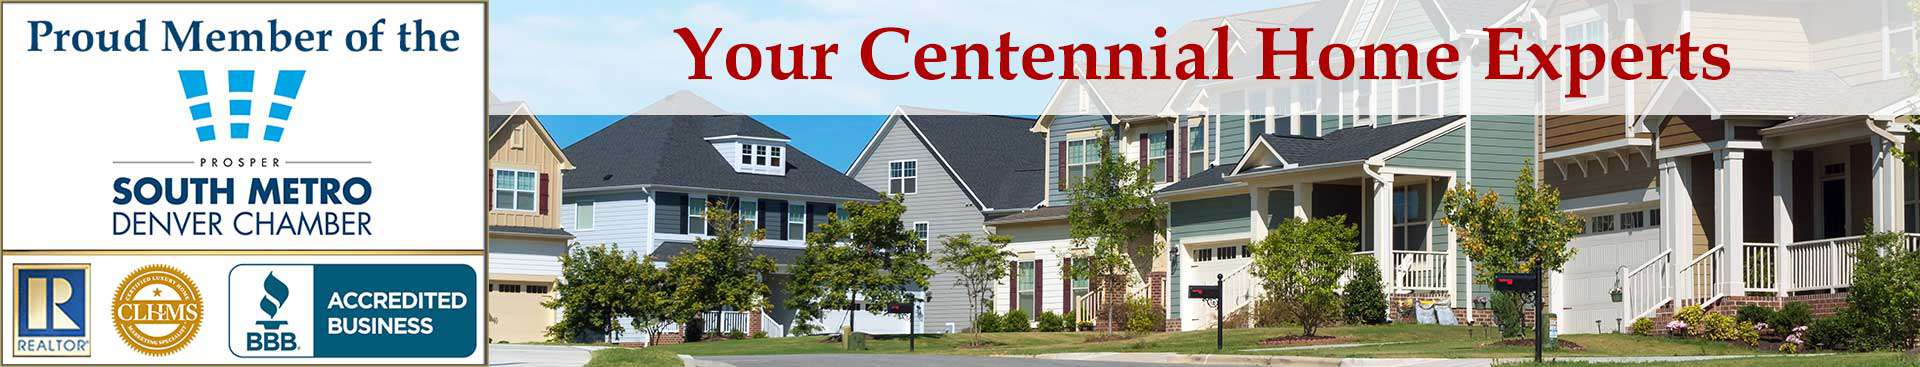 Centennial CO Organizational Banner